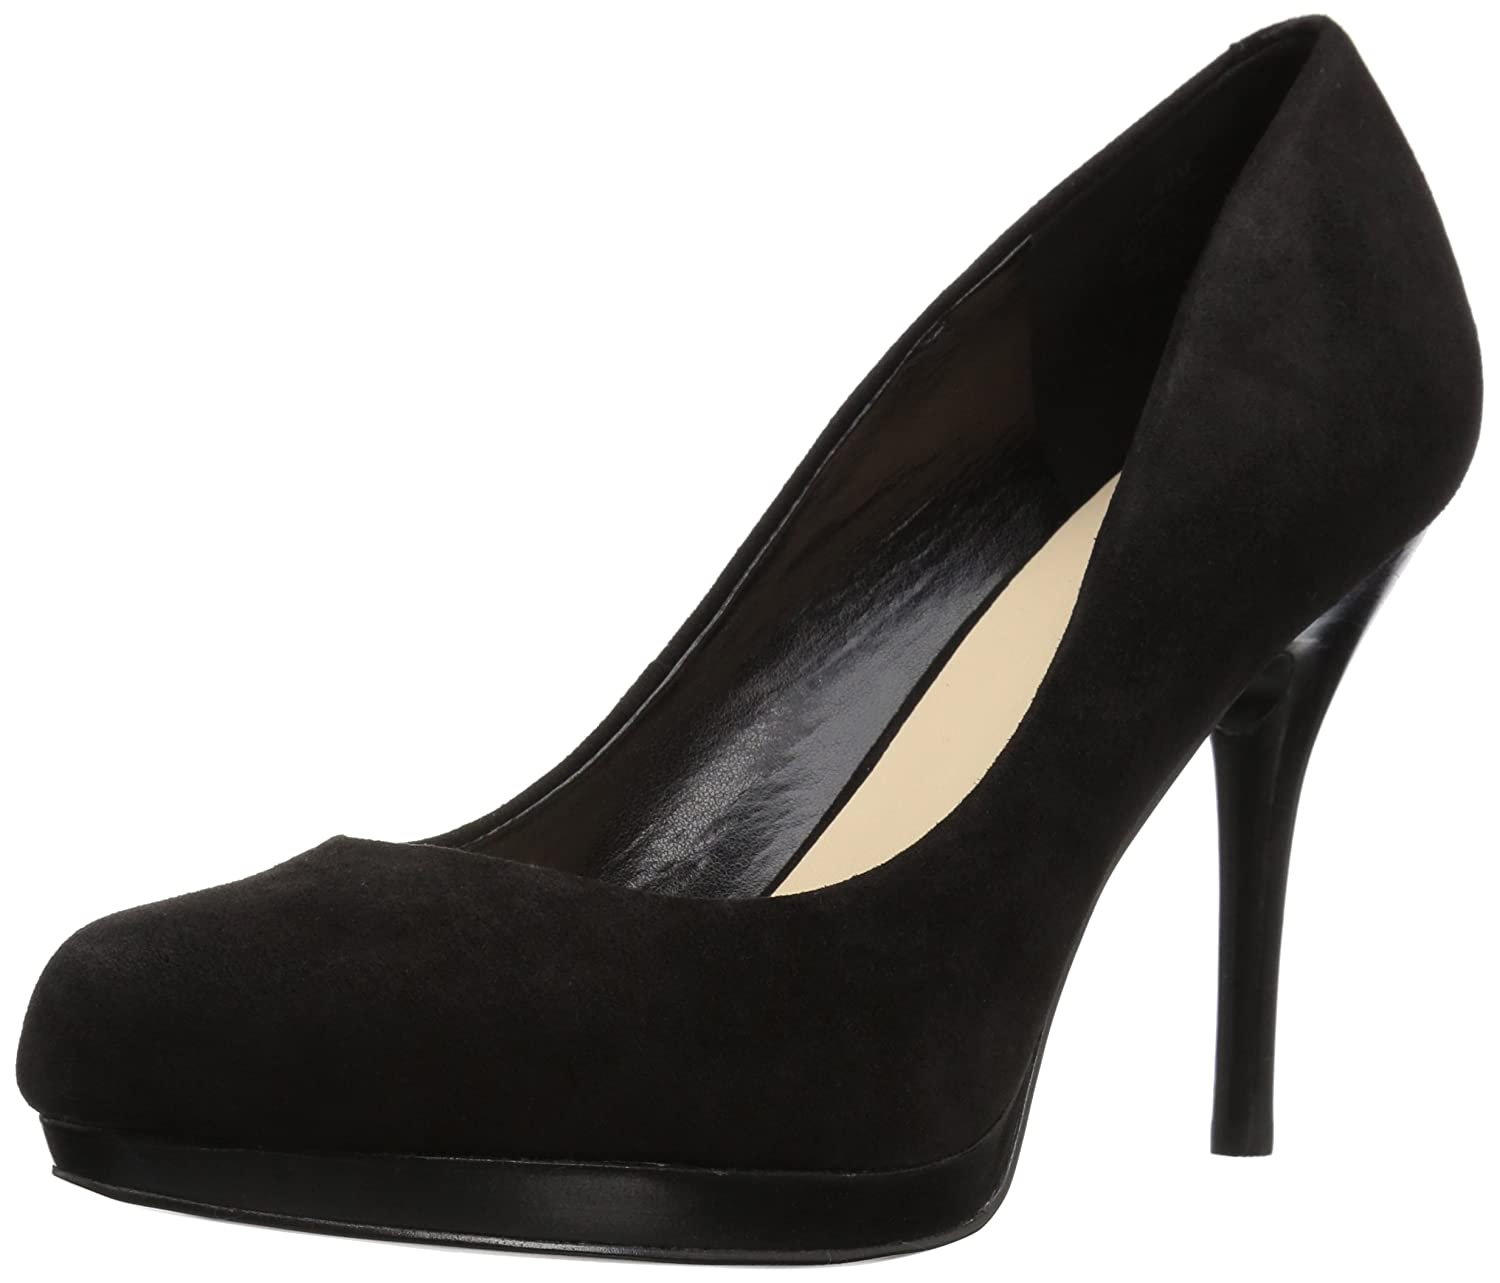 Nine West Women's Kristal Suede Dress Pump B01N2PK8P1 12 B(M) US|Black